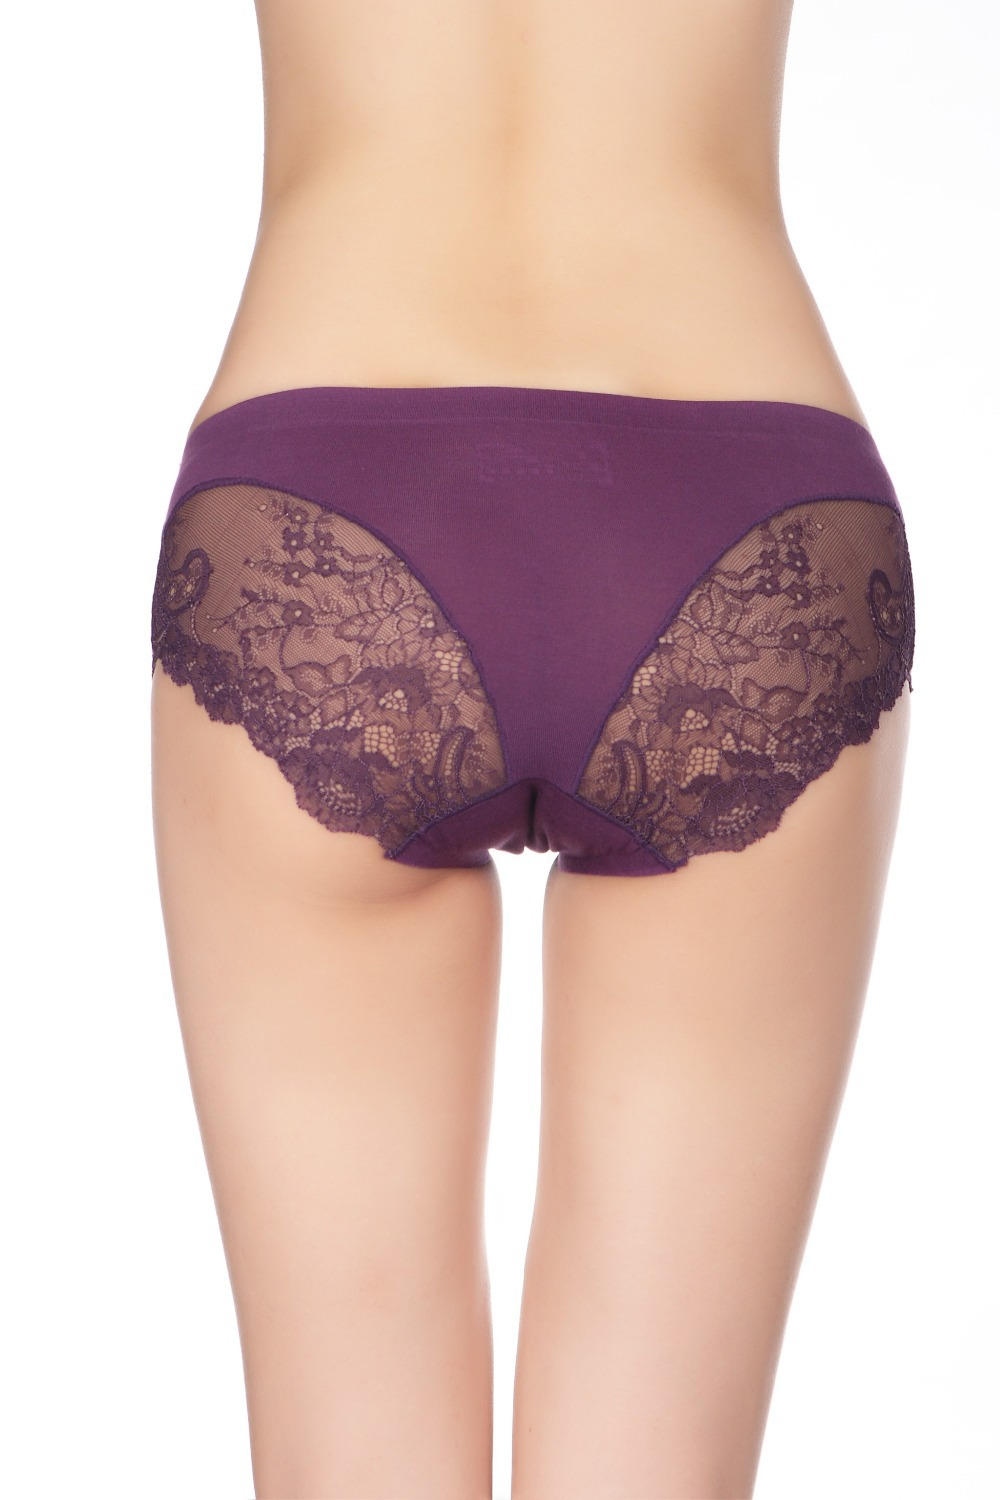 2014 new ladies' sexy lace seamless panties ladies'bamboo fiber